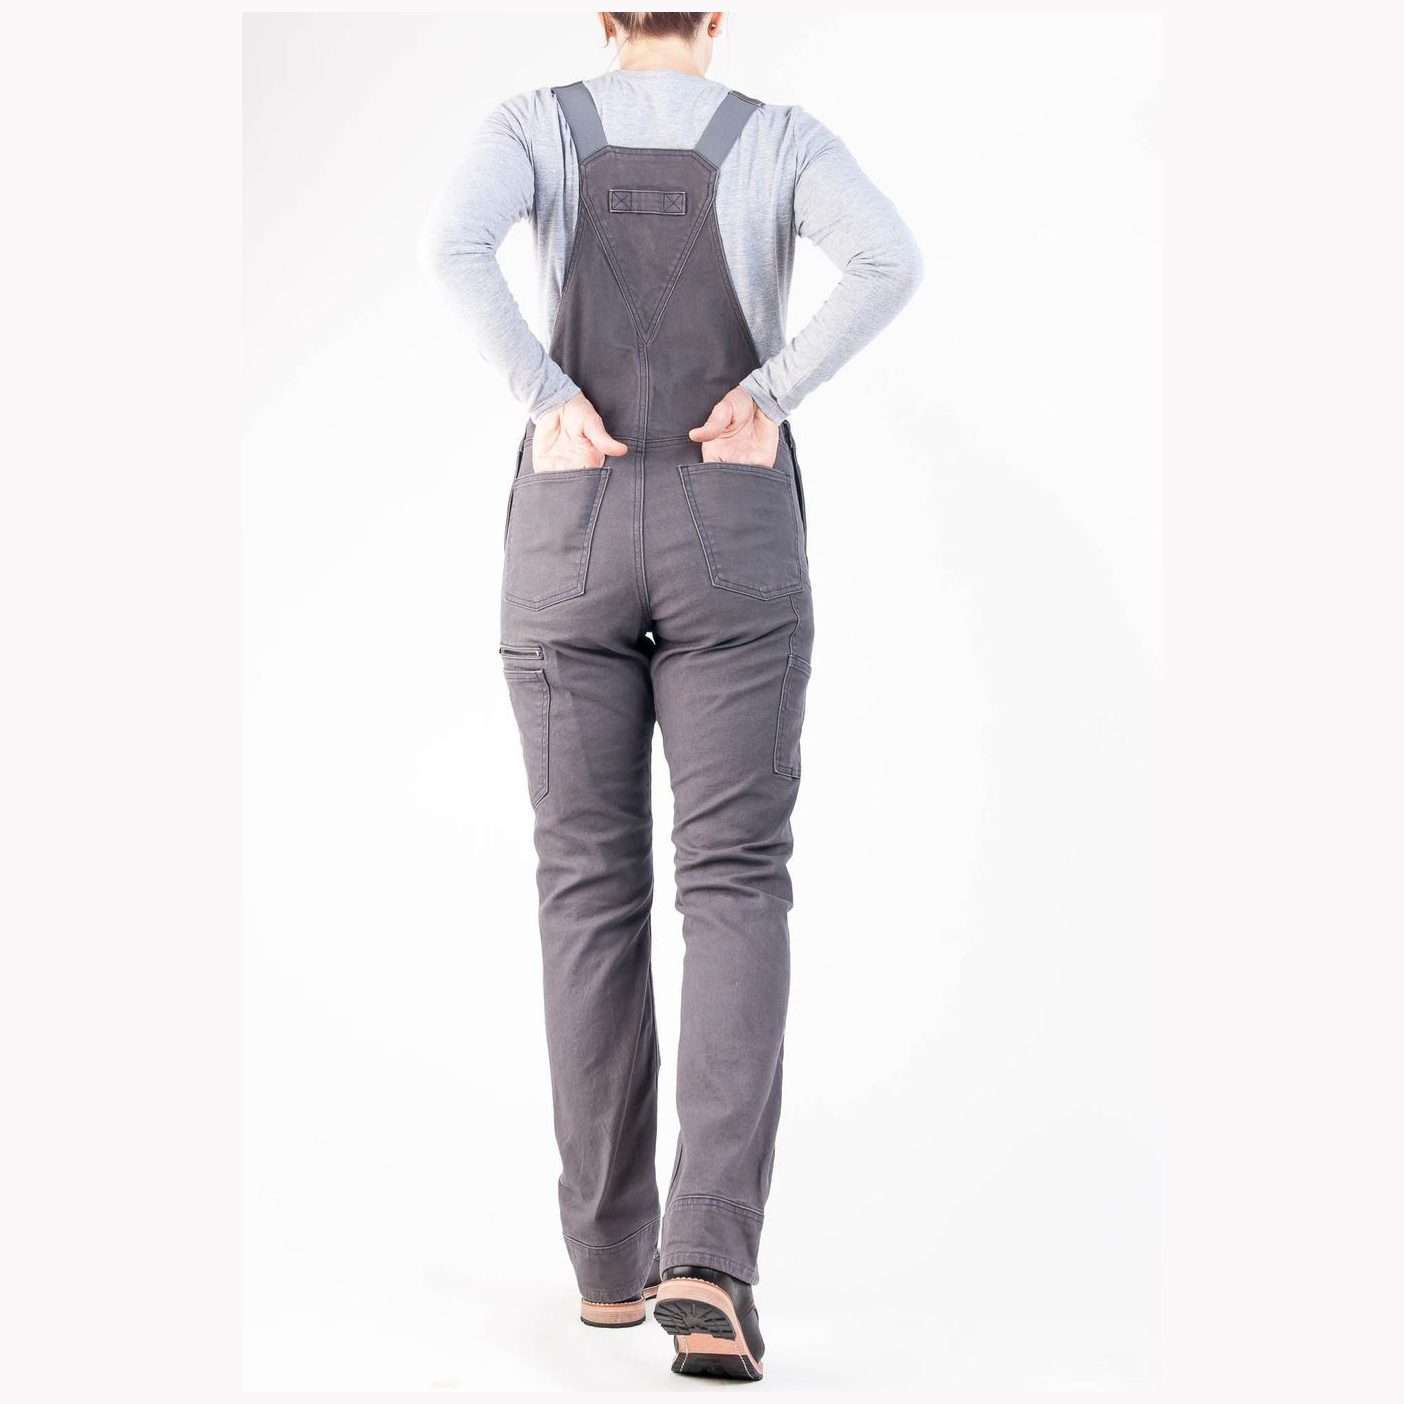 Dovetail Workwear W's Freshley Overall, Dark Grey Canvas